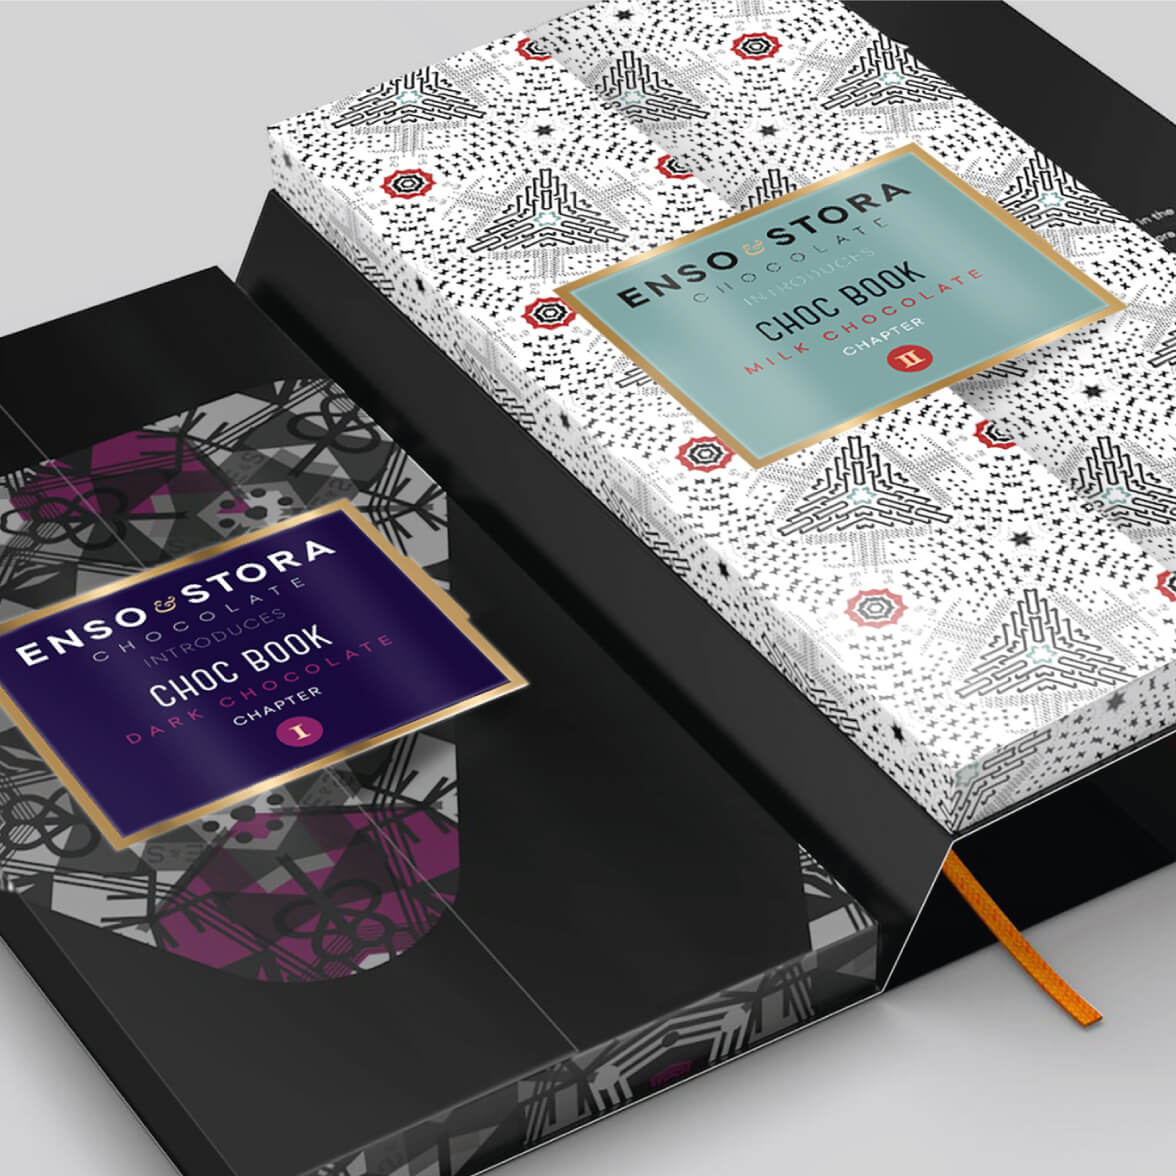 Stora Enso Choco Book - packaging design